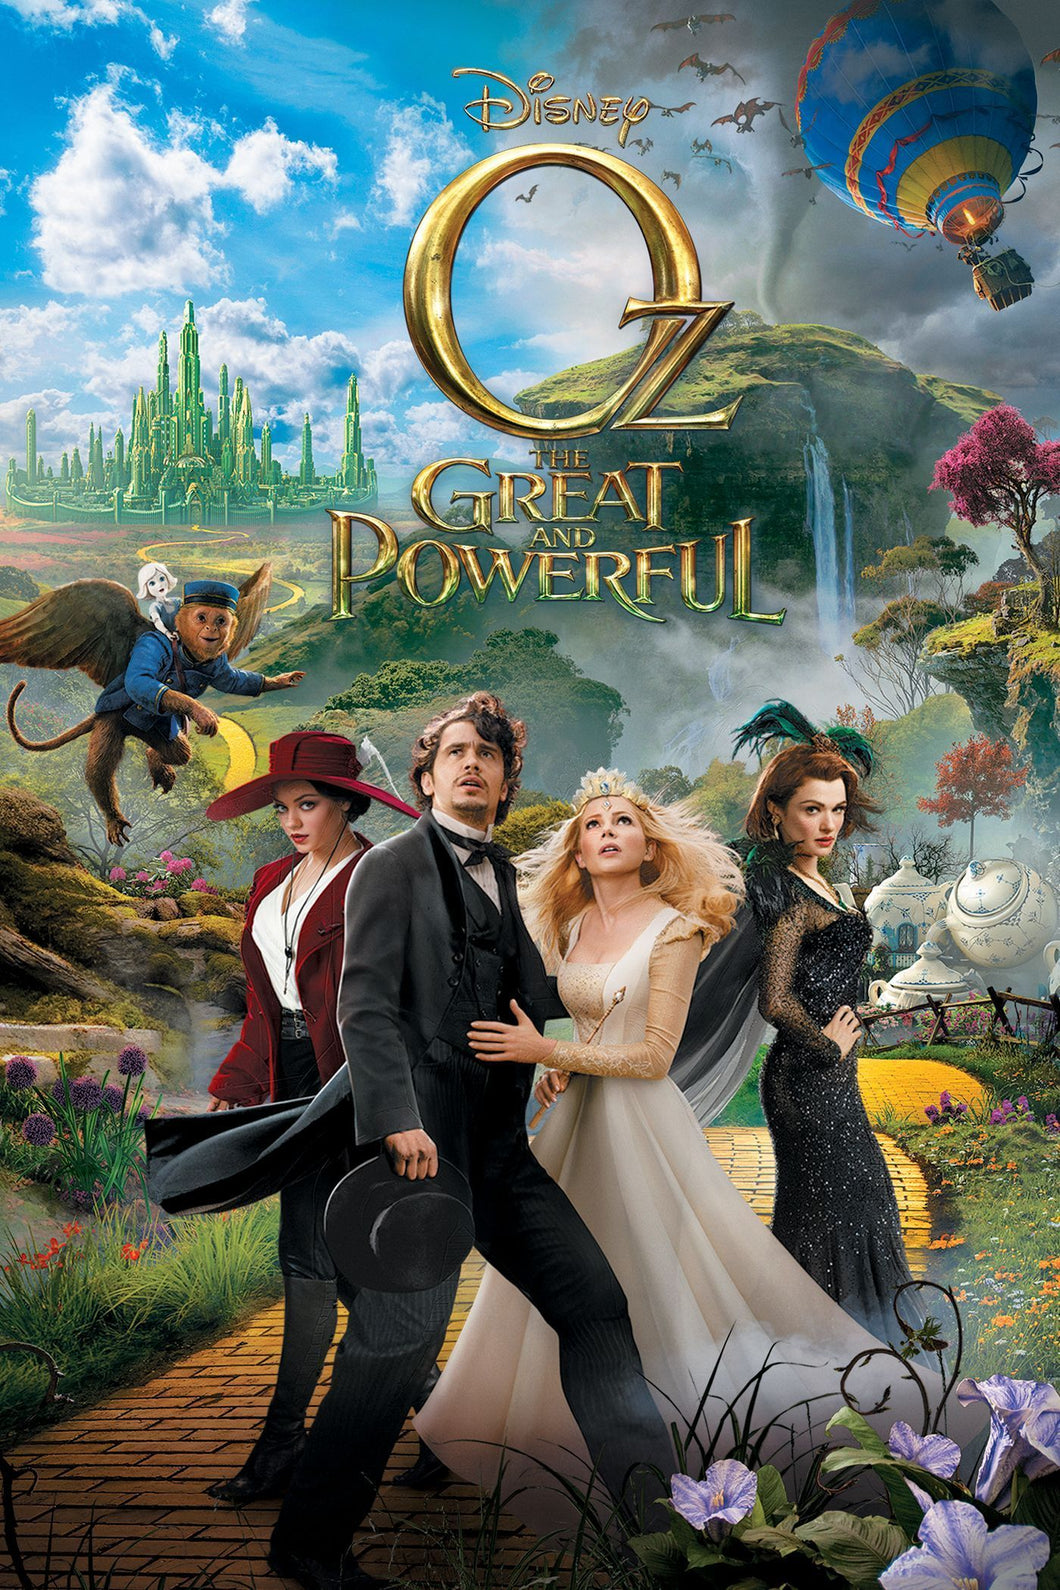 Oz the Great and Powerful | HD Movies Anywhere Code Ports to Vudu, iTunes, GP - Movie Sometimes